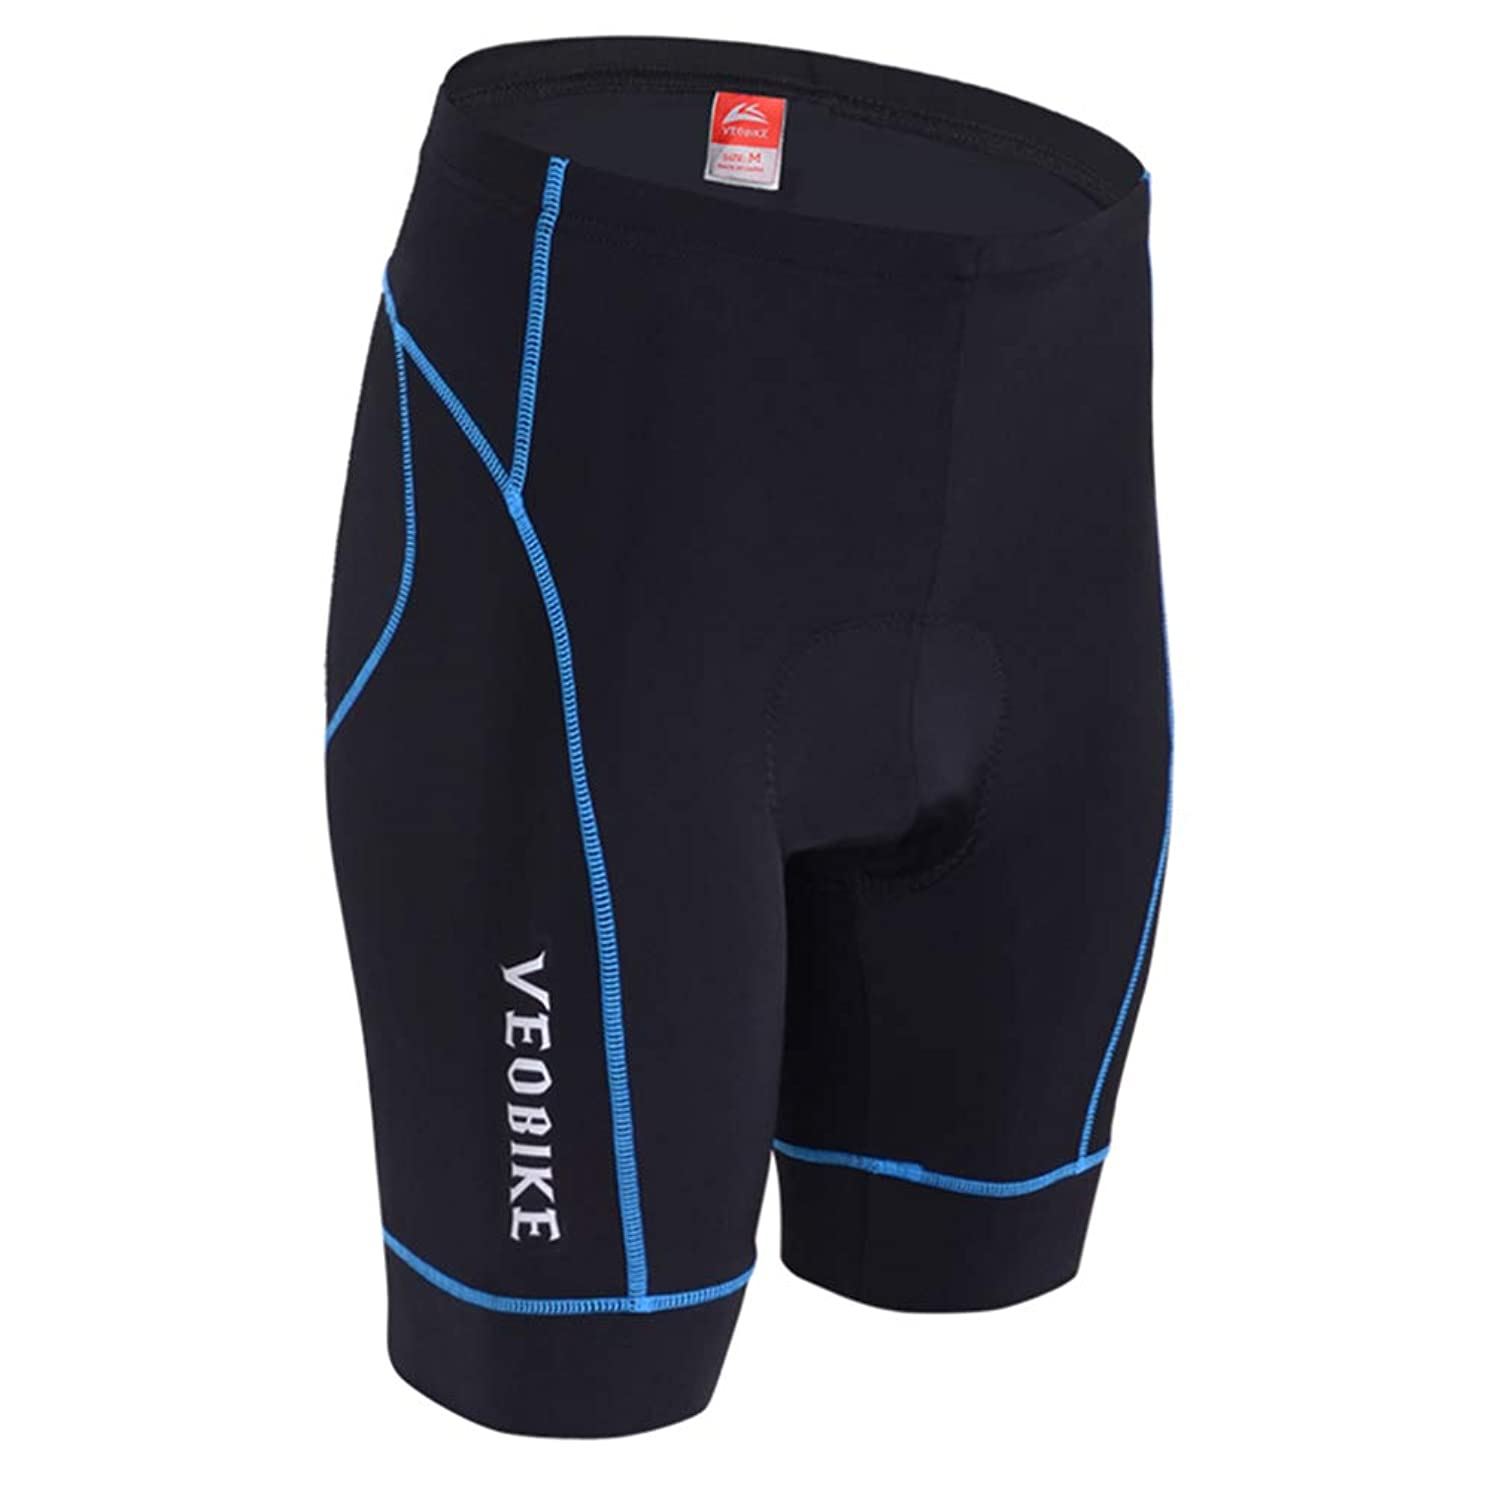 Cycling Shorts Men's and Cycling Underwear with High-Density High-Elasticity and Highly Breathable 4D Sponge Padded,M